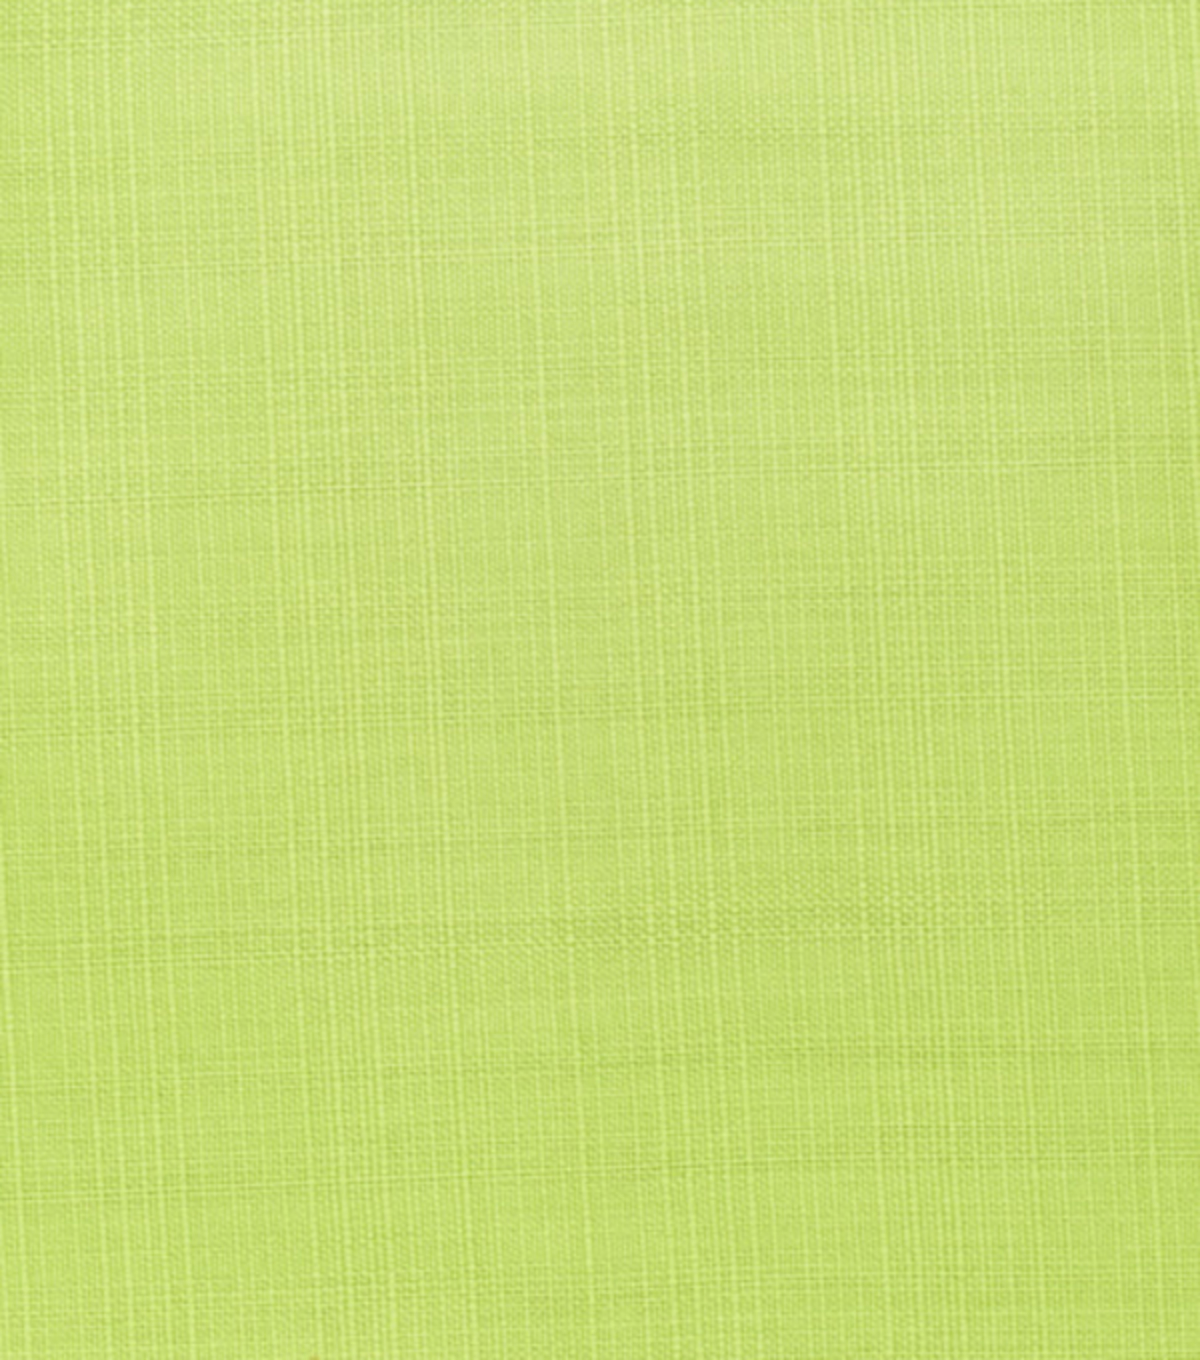 Home Decor 8\u0022x8\u0022 Fabric Swatch-Eaton Square Parrot Lime